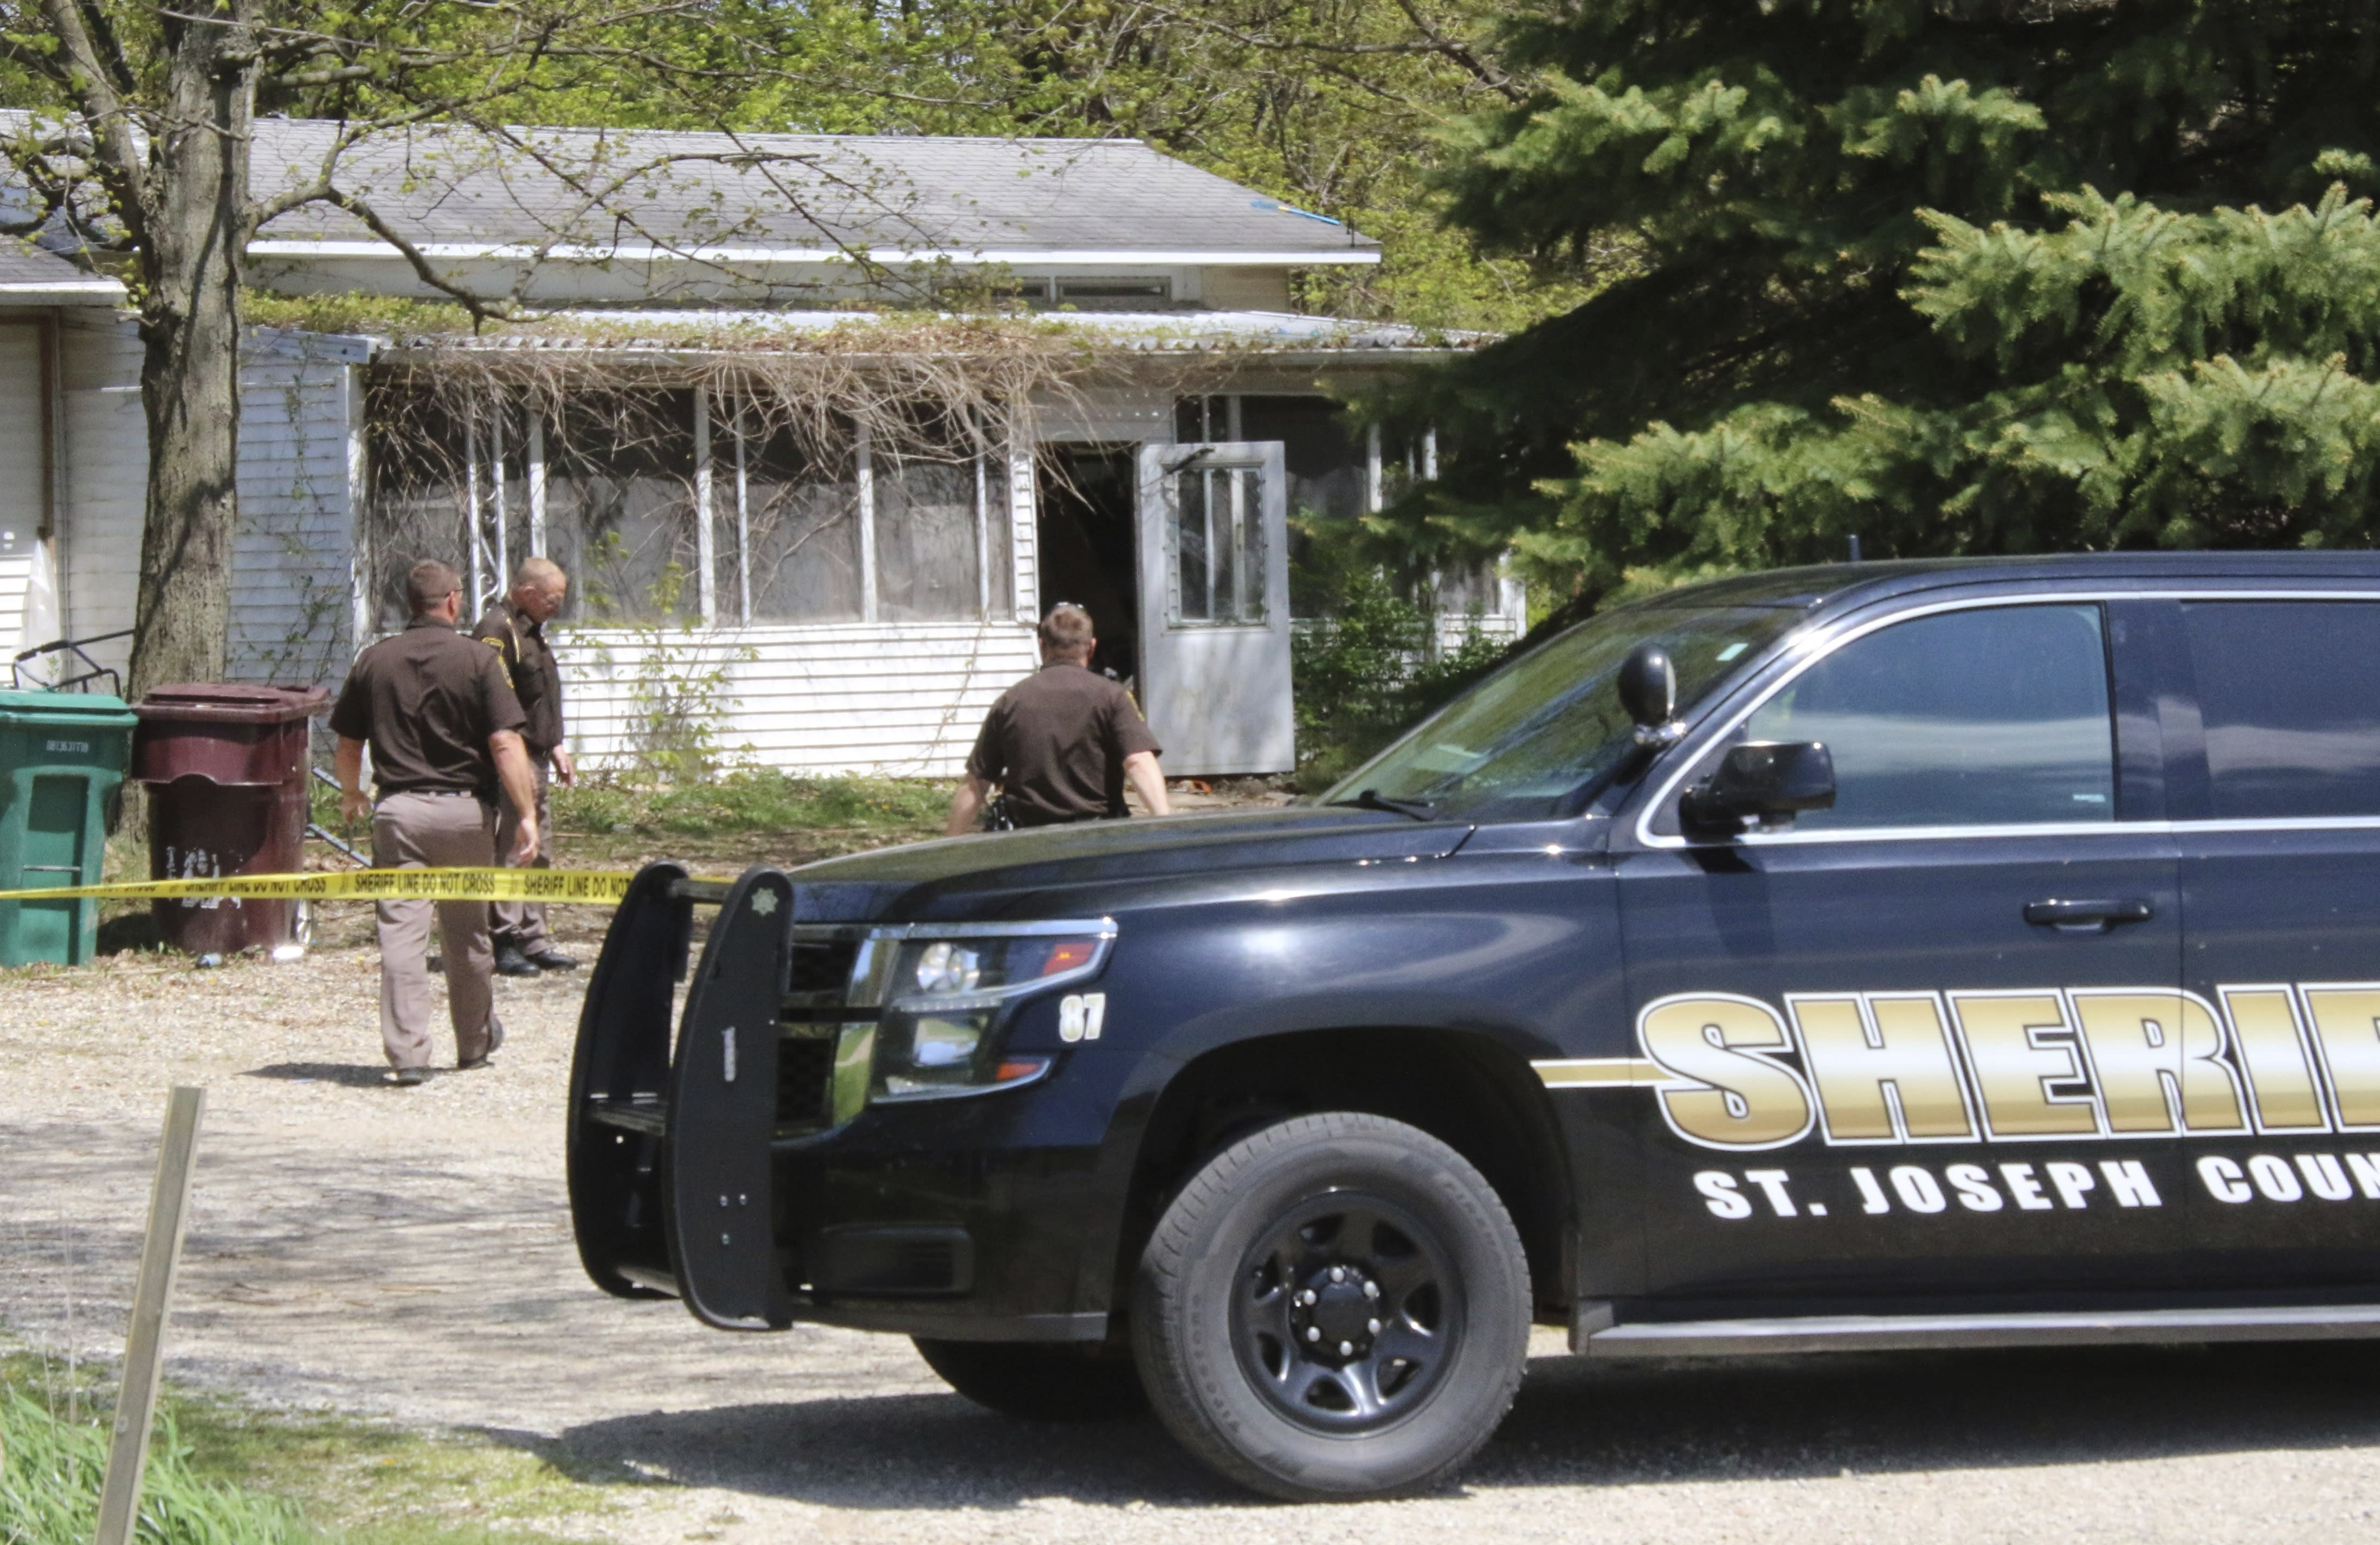 Records: 9-year-old boy charged in mother's shooting death